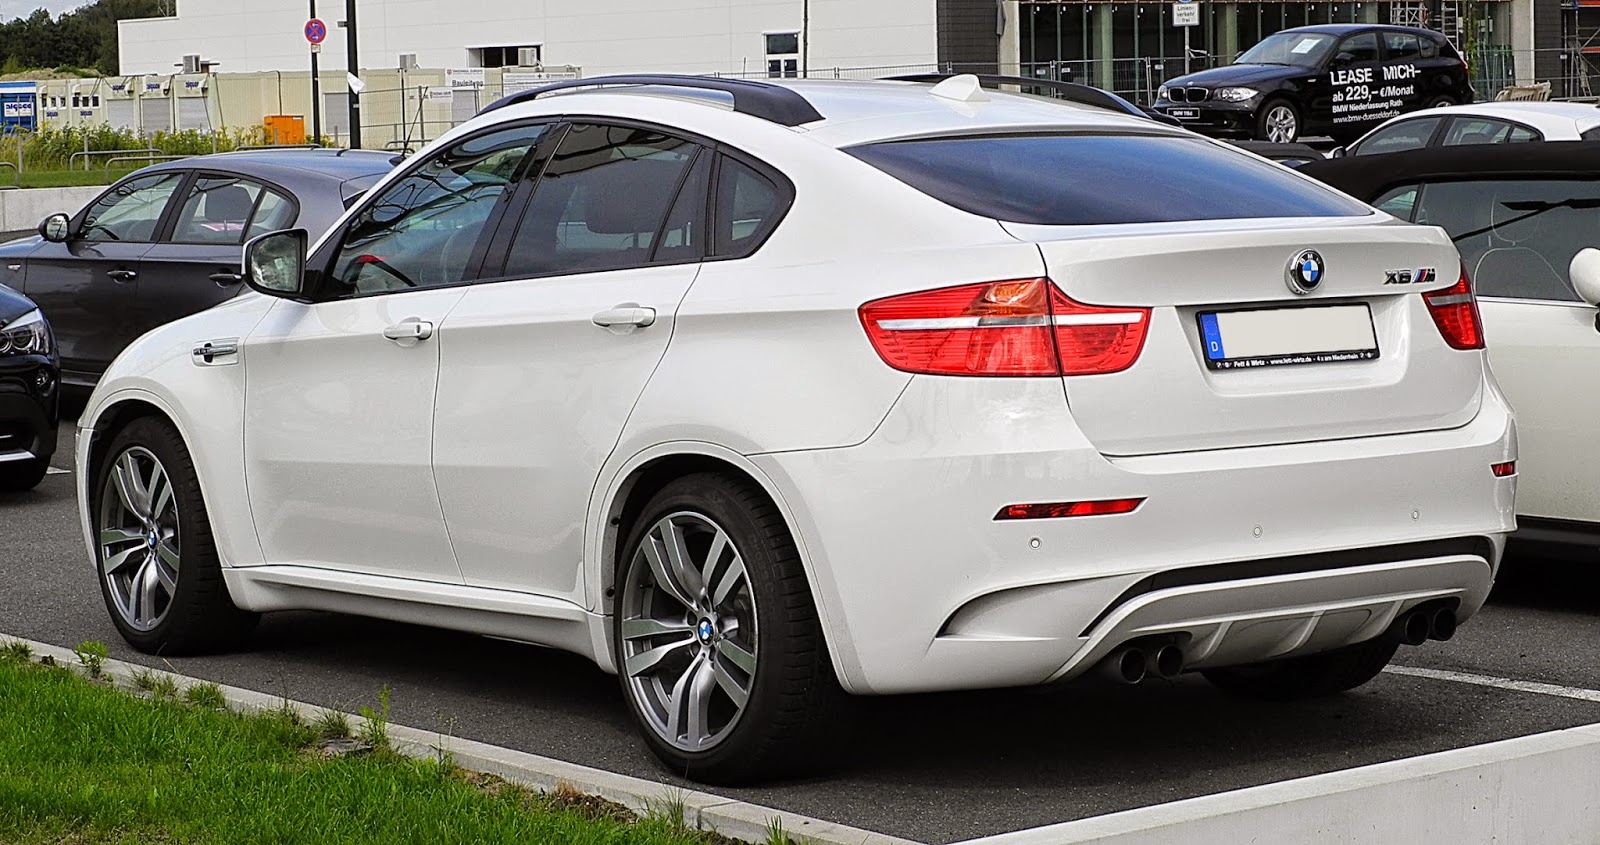 New Cars: BMW X6